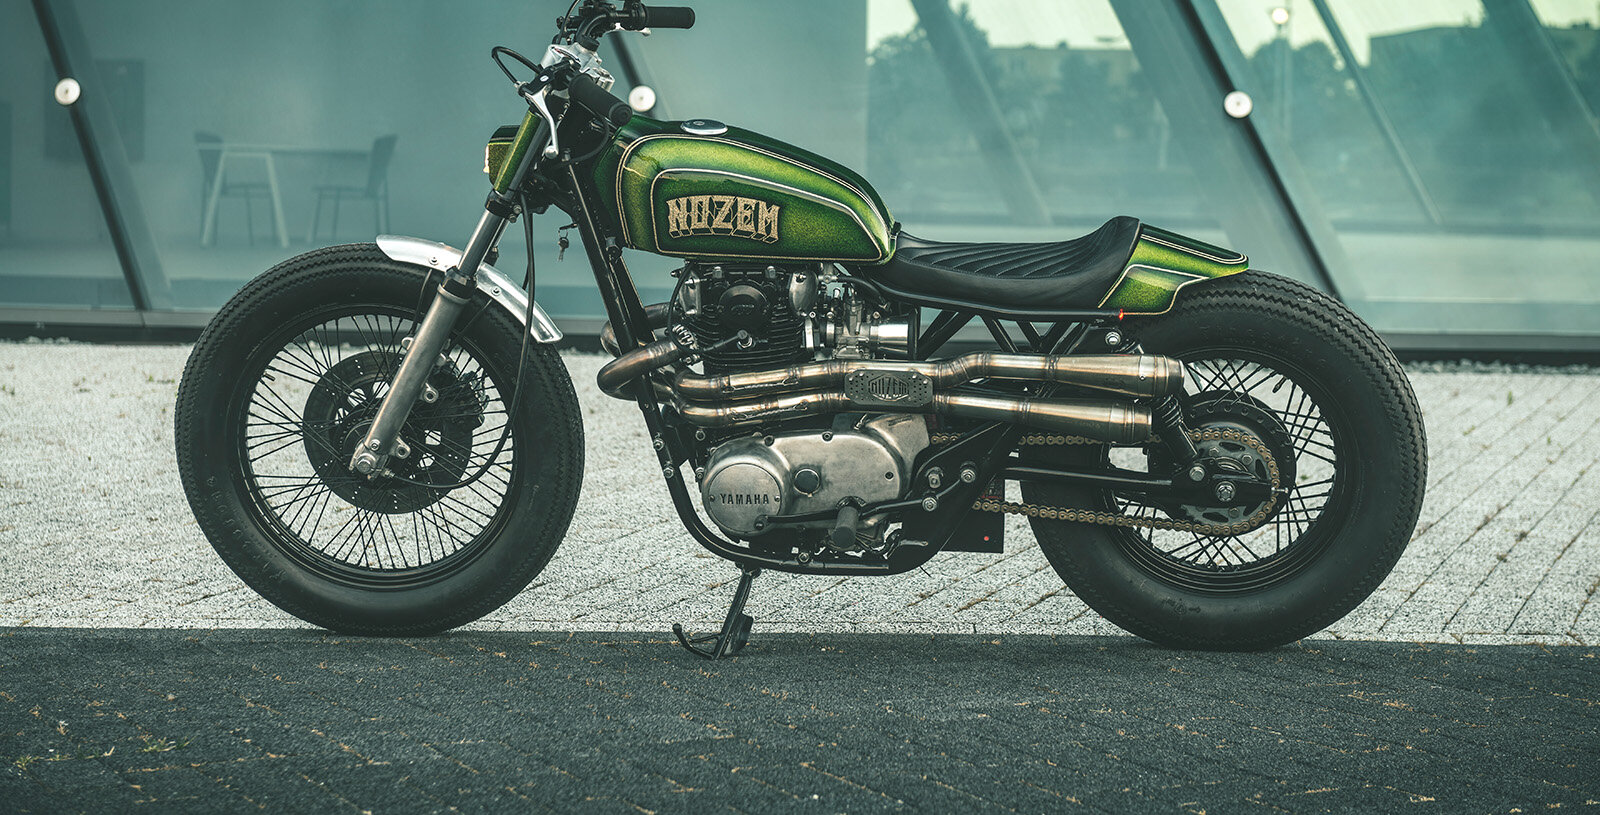 "NOZEM XS650 - ""We thought it was time for something different,"" Nozem co-founder Lorenzo explains. ""We love café racers, but this one is a mix. A bit of tracker, bobber, and chopper.""The design might be quirky, but the levels of finish are superlative. Behind the engine, the frame is completely new—and considerably lower than stock."